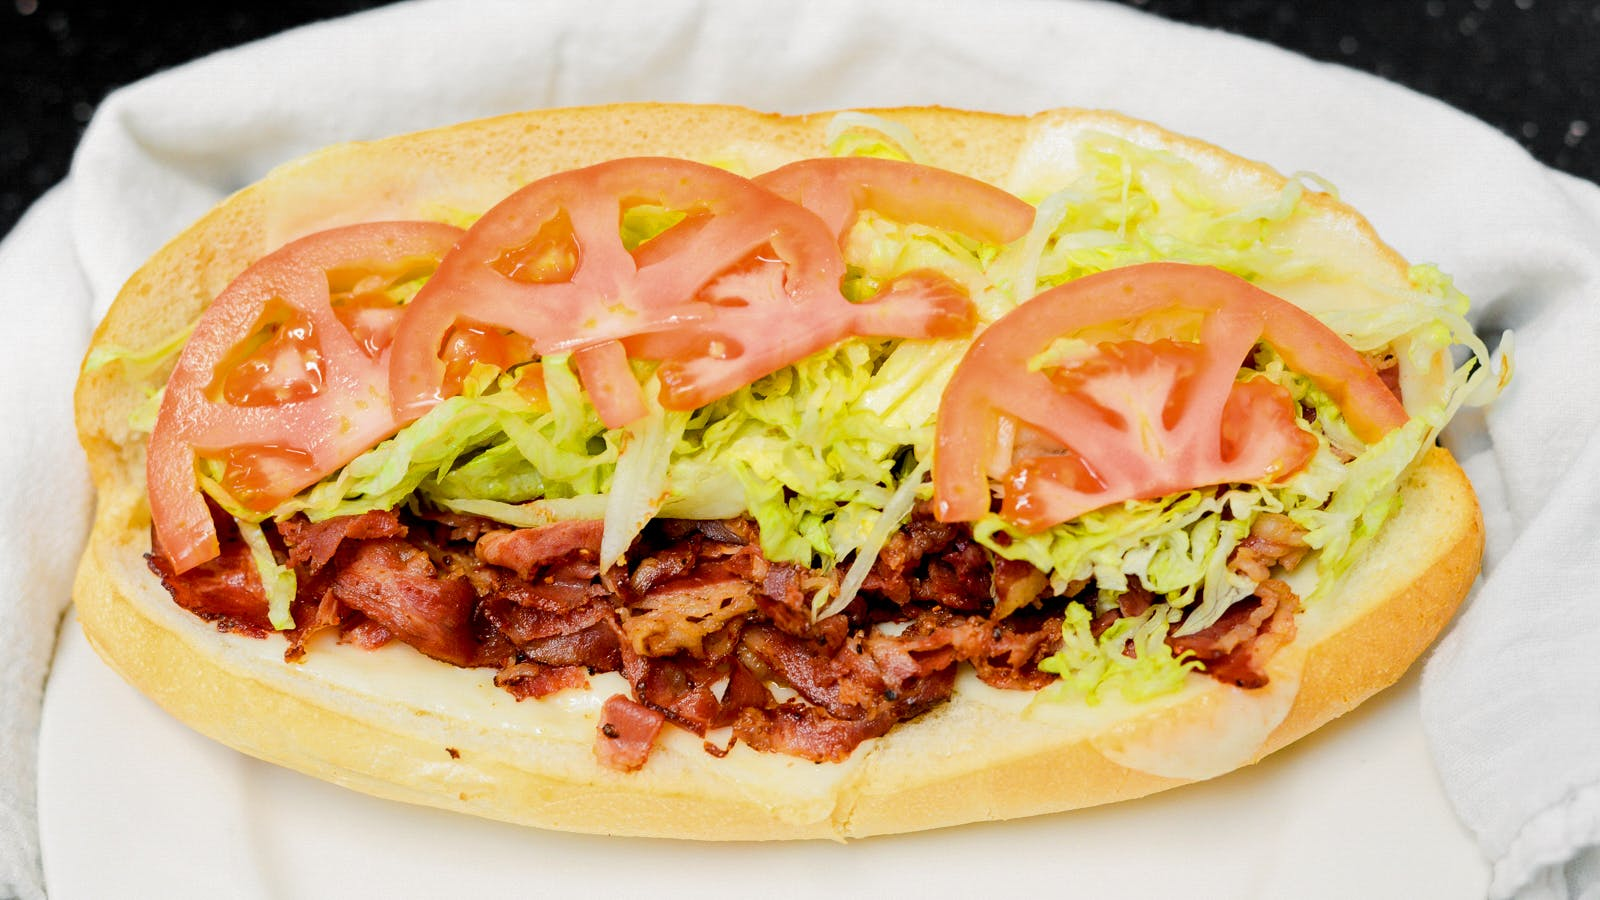 Hot Pastrami Sandwich from Ameci Pizza & Pasta - Lake Forest in Lake Forest, CA